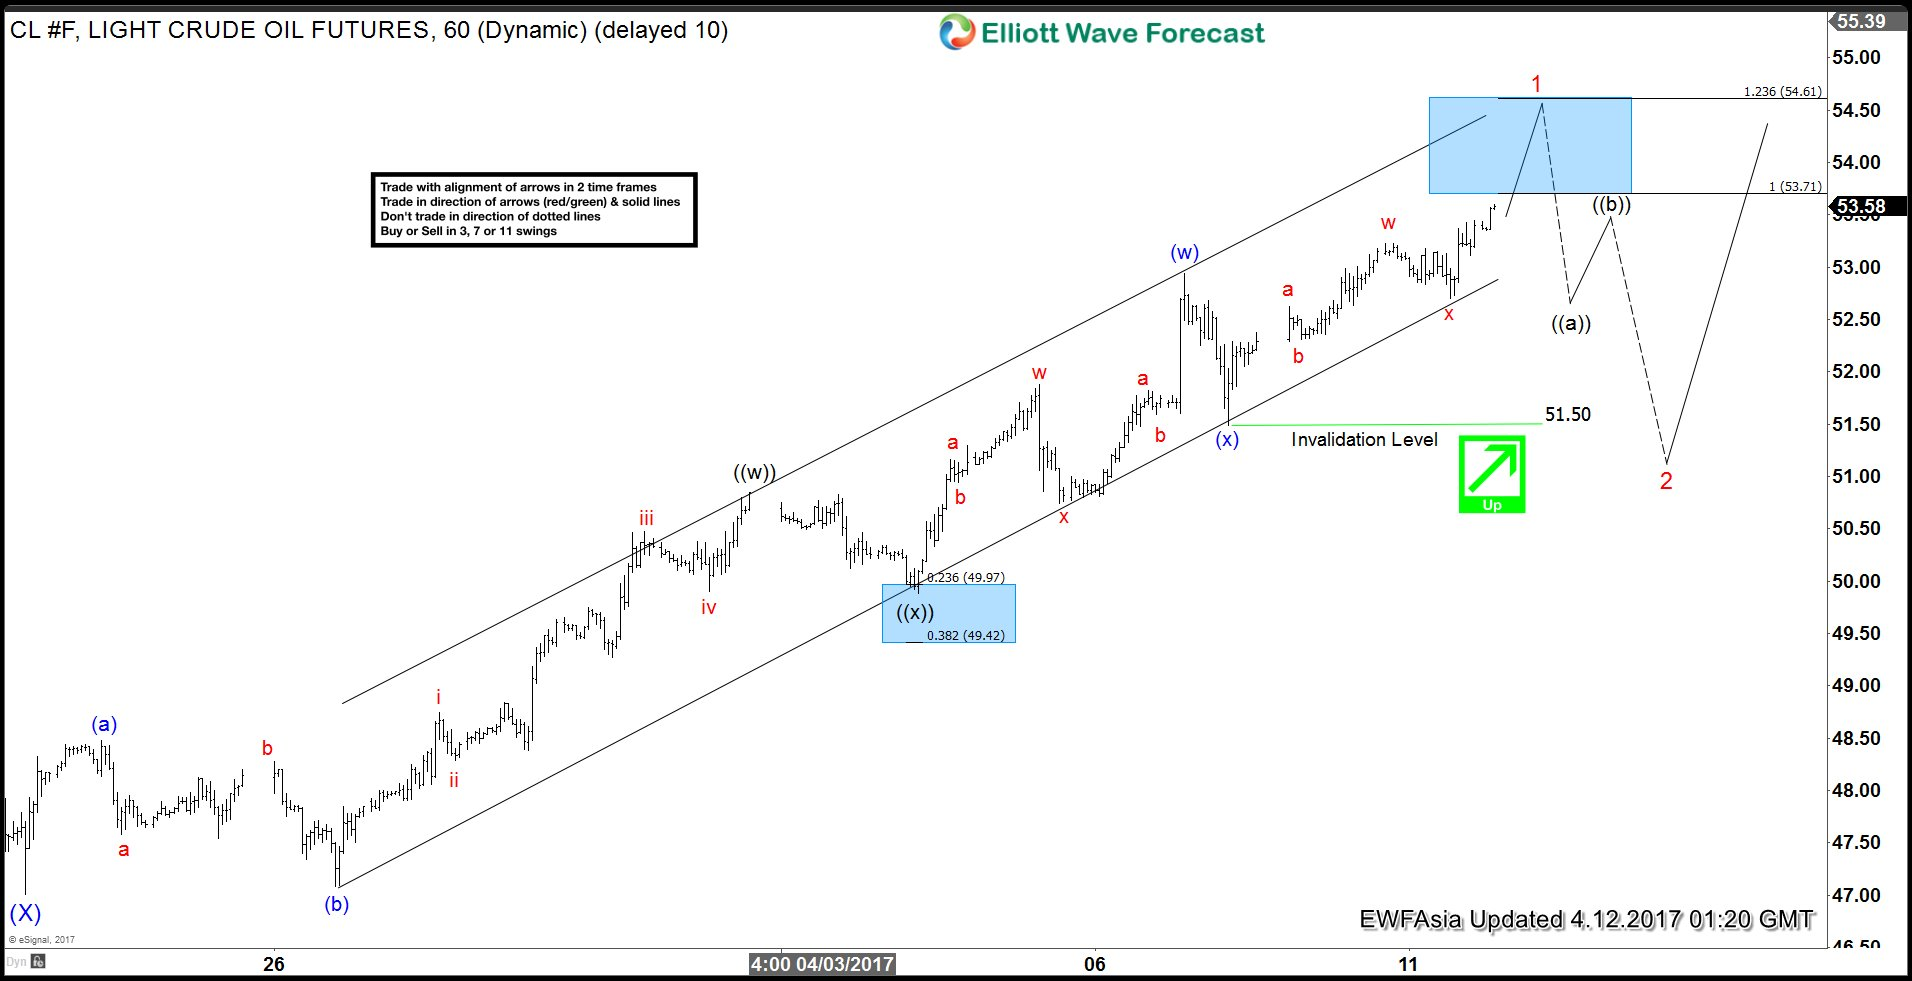 CL_F Elliott Wave View: Mature Cycle 04/12/17 – Elliott Wave Forecast